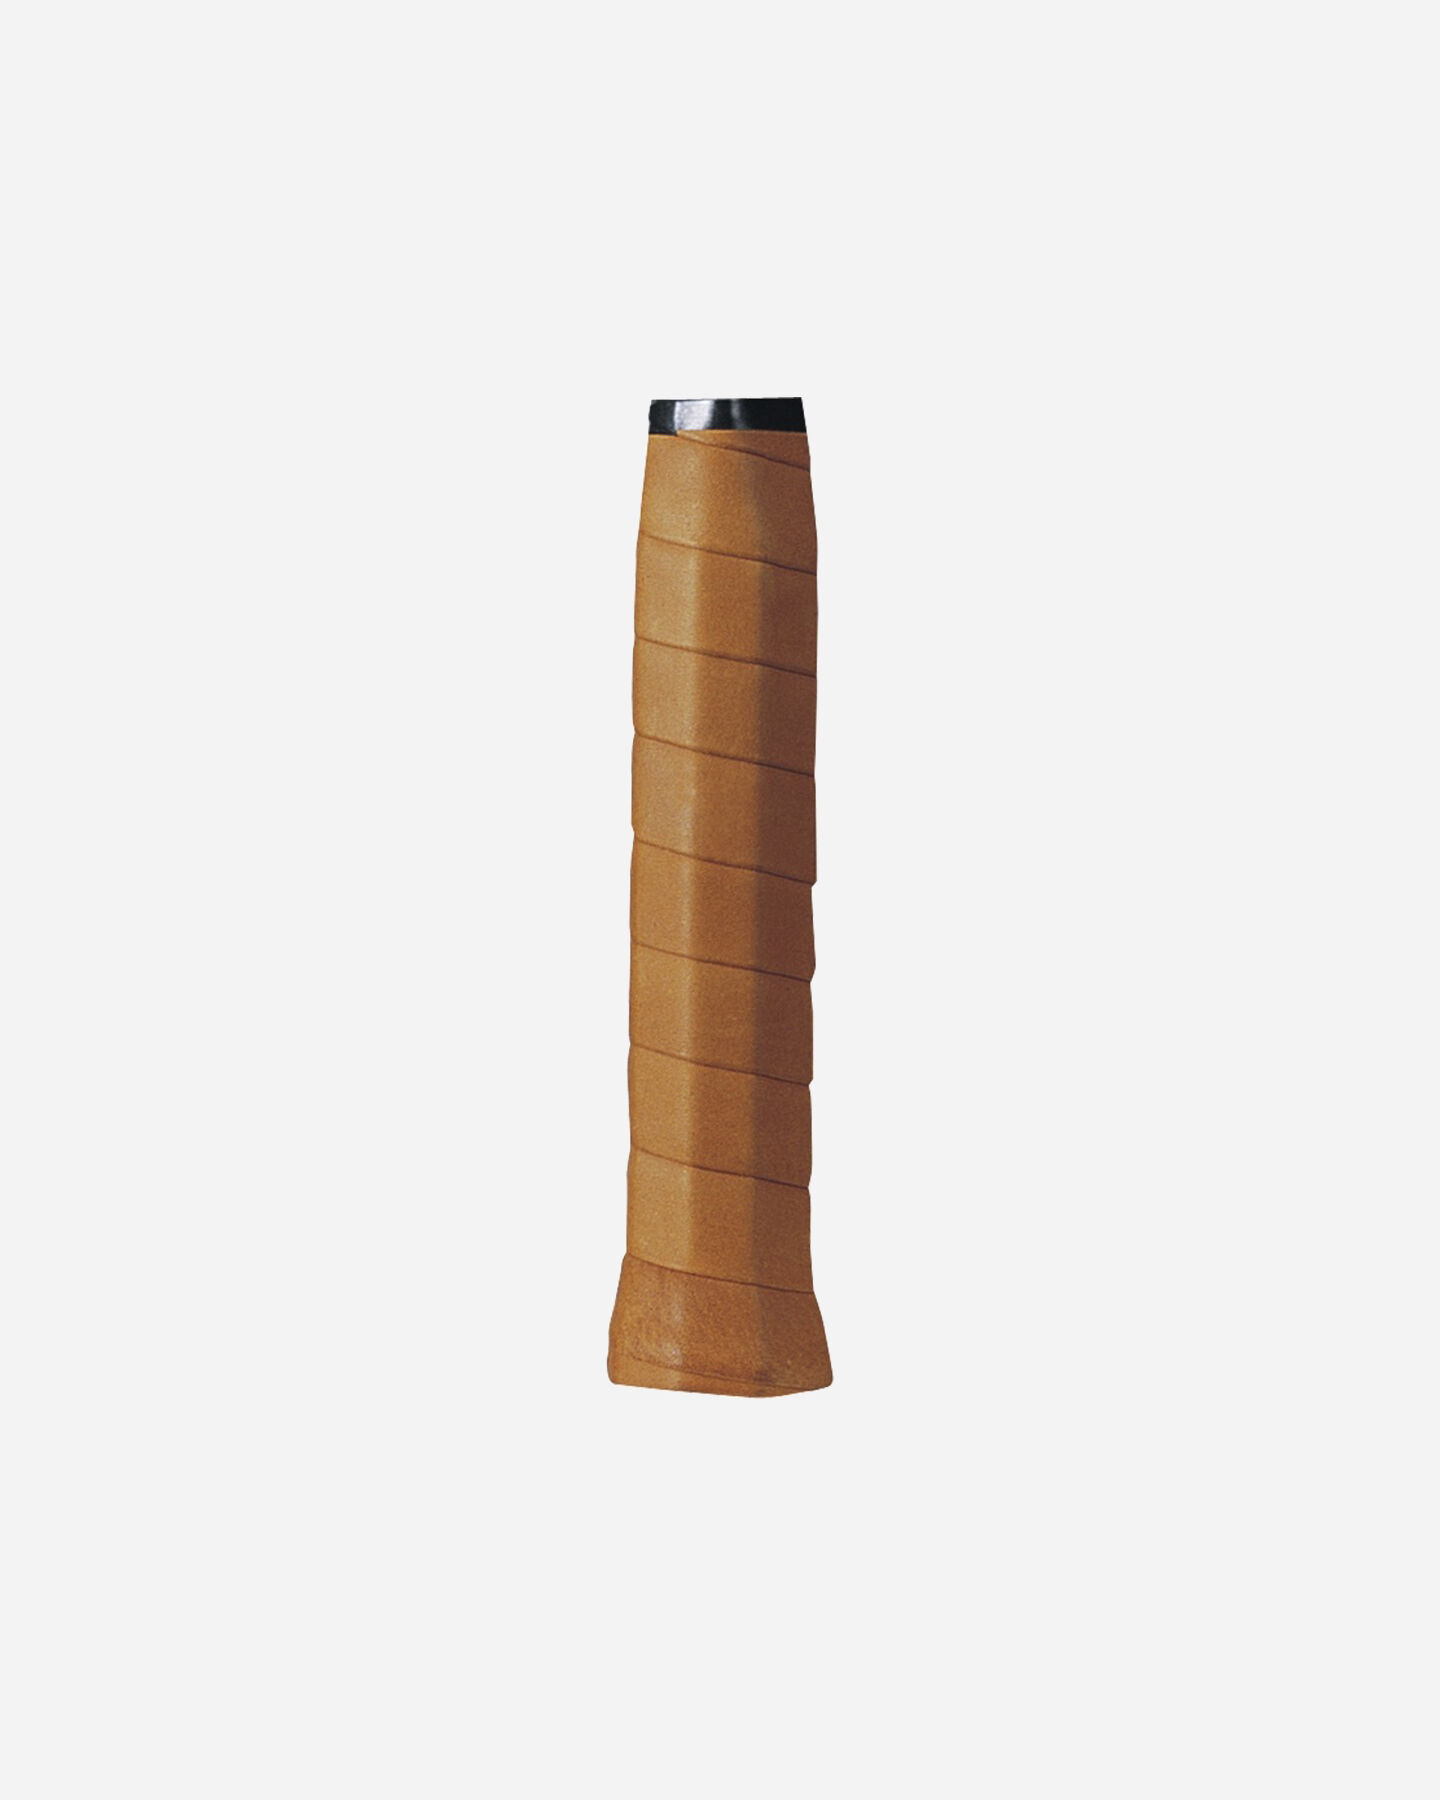 Grip tennis WILSON LEATHER GRIP NATURAL S4046157 1 UNI scatto 1